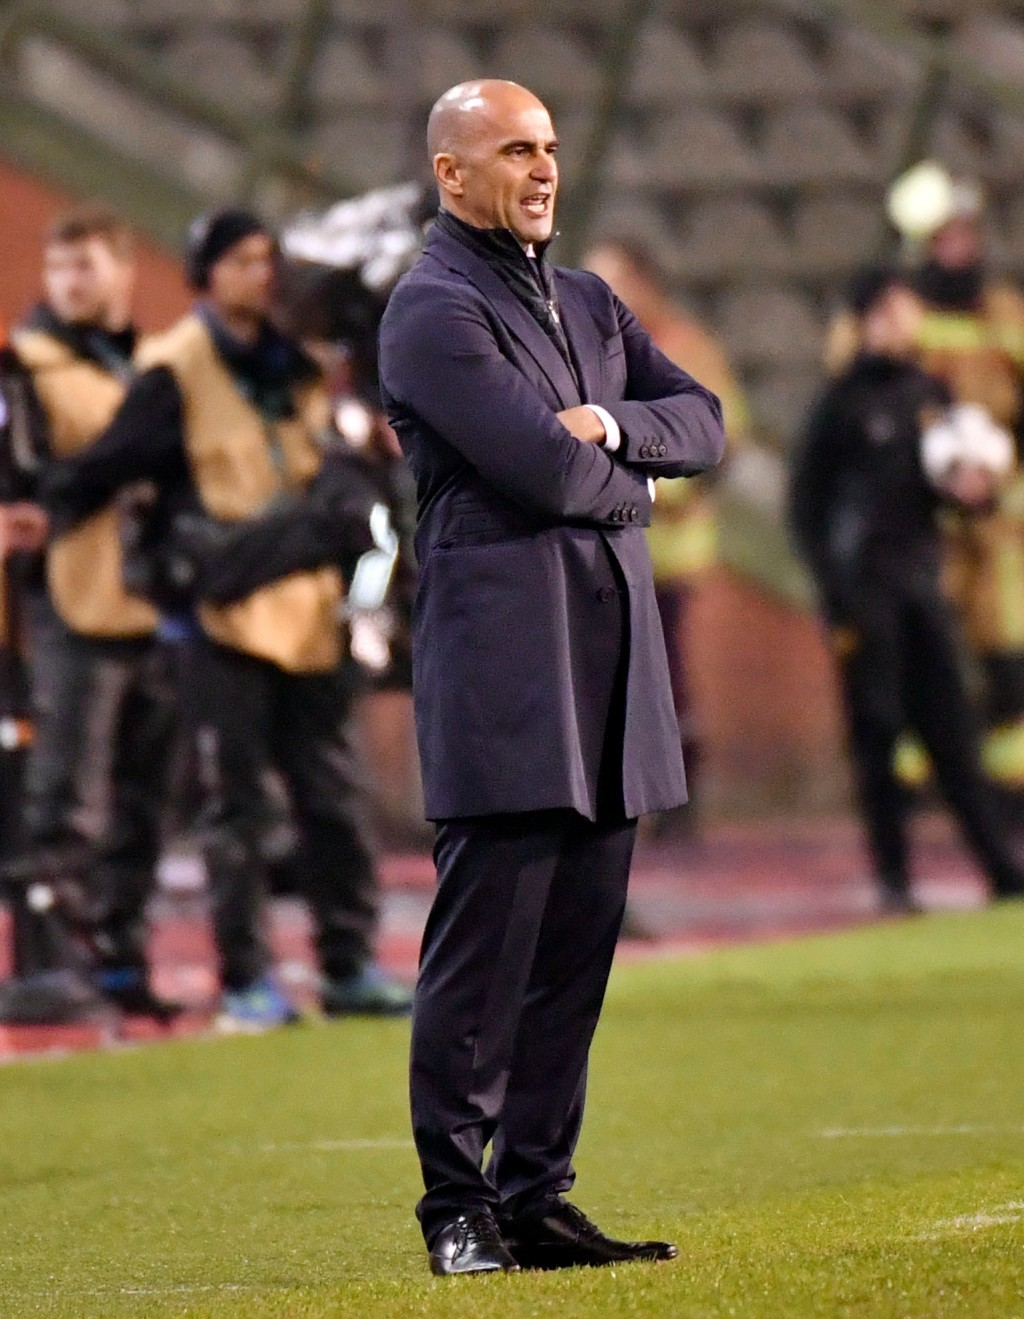 FILE - In this Tuesday, March 27, 2018 filer, Belgium's coach Roberto Martinez stands on the sideline during an international friendly soccer match be...